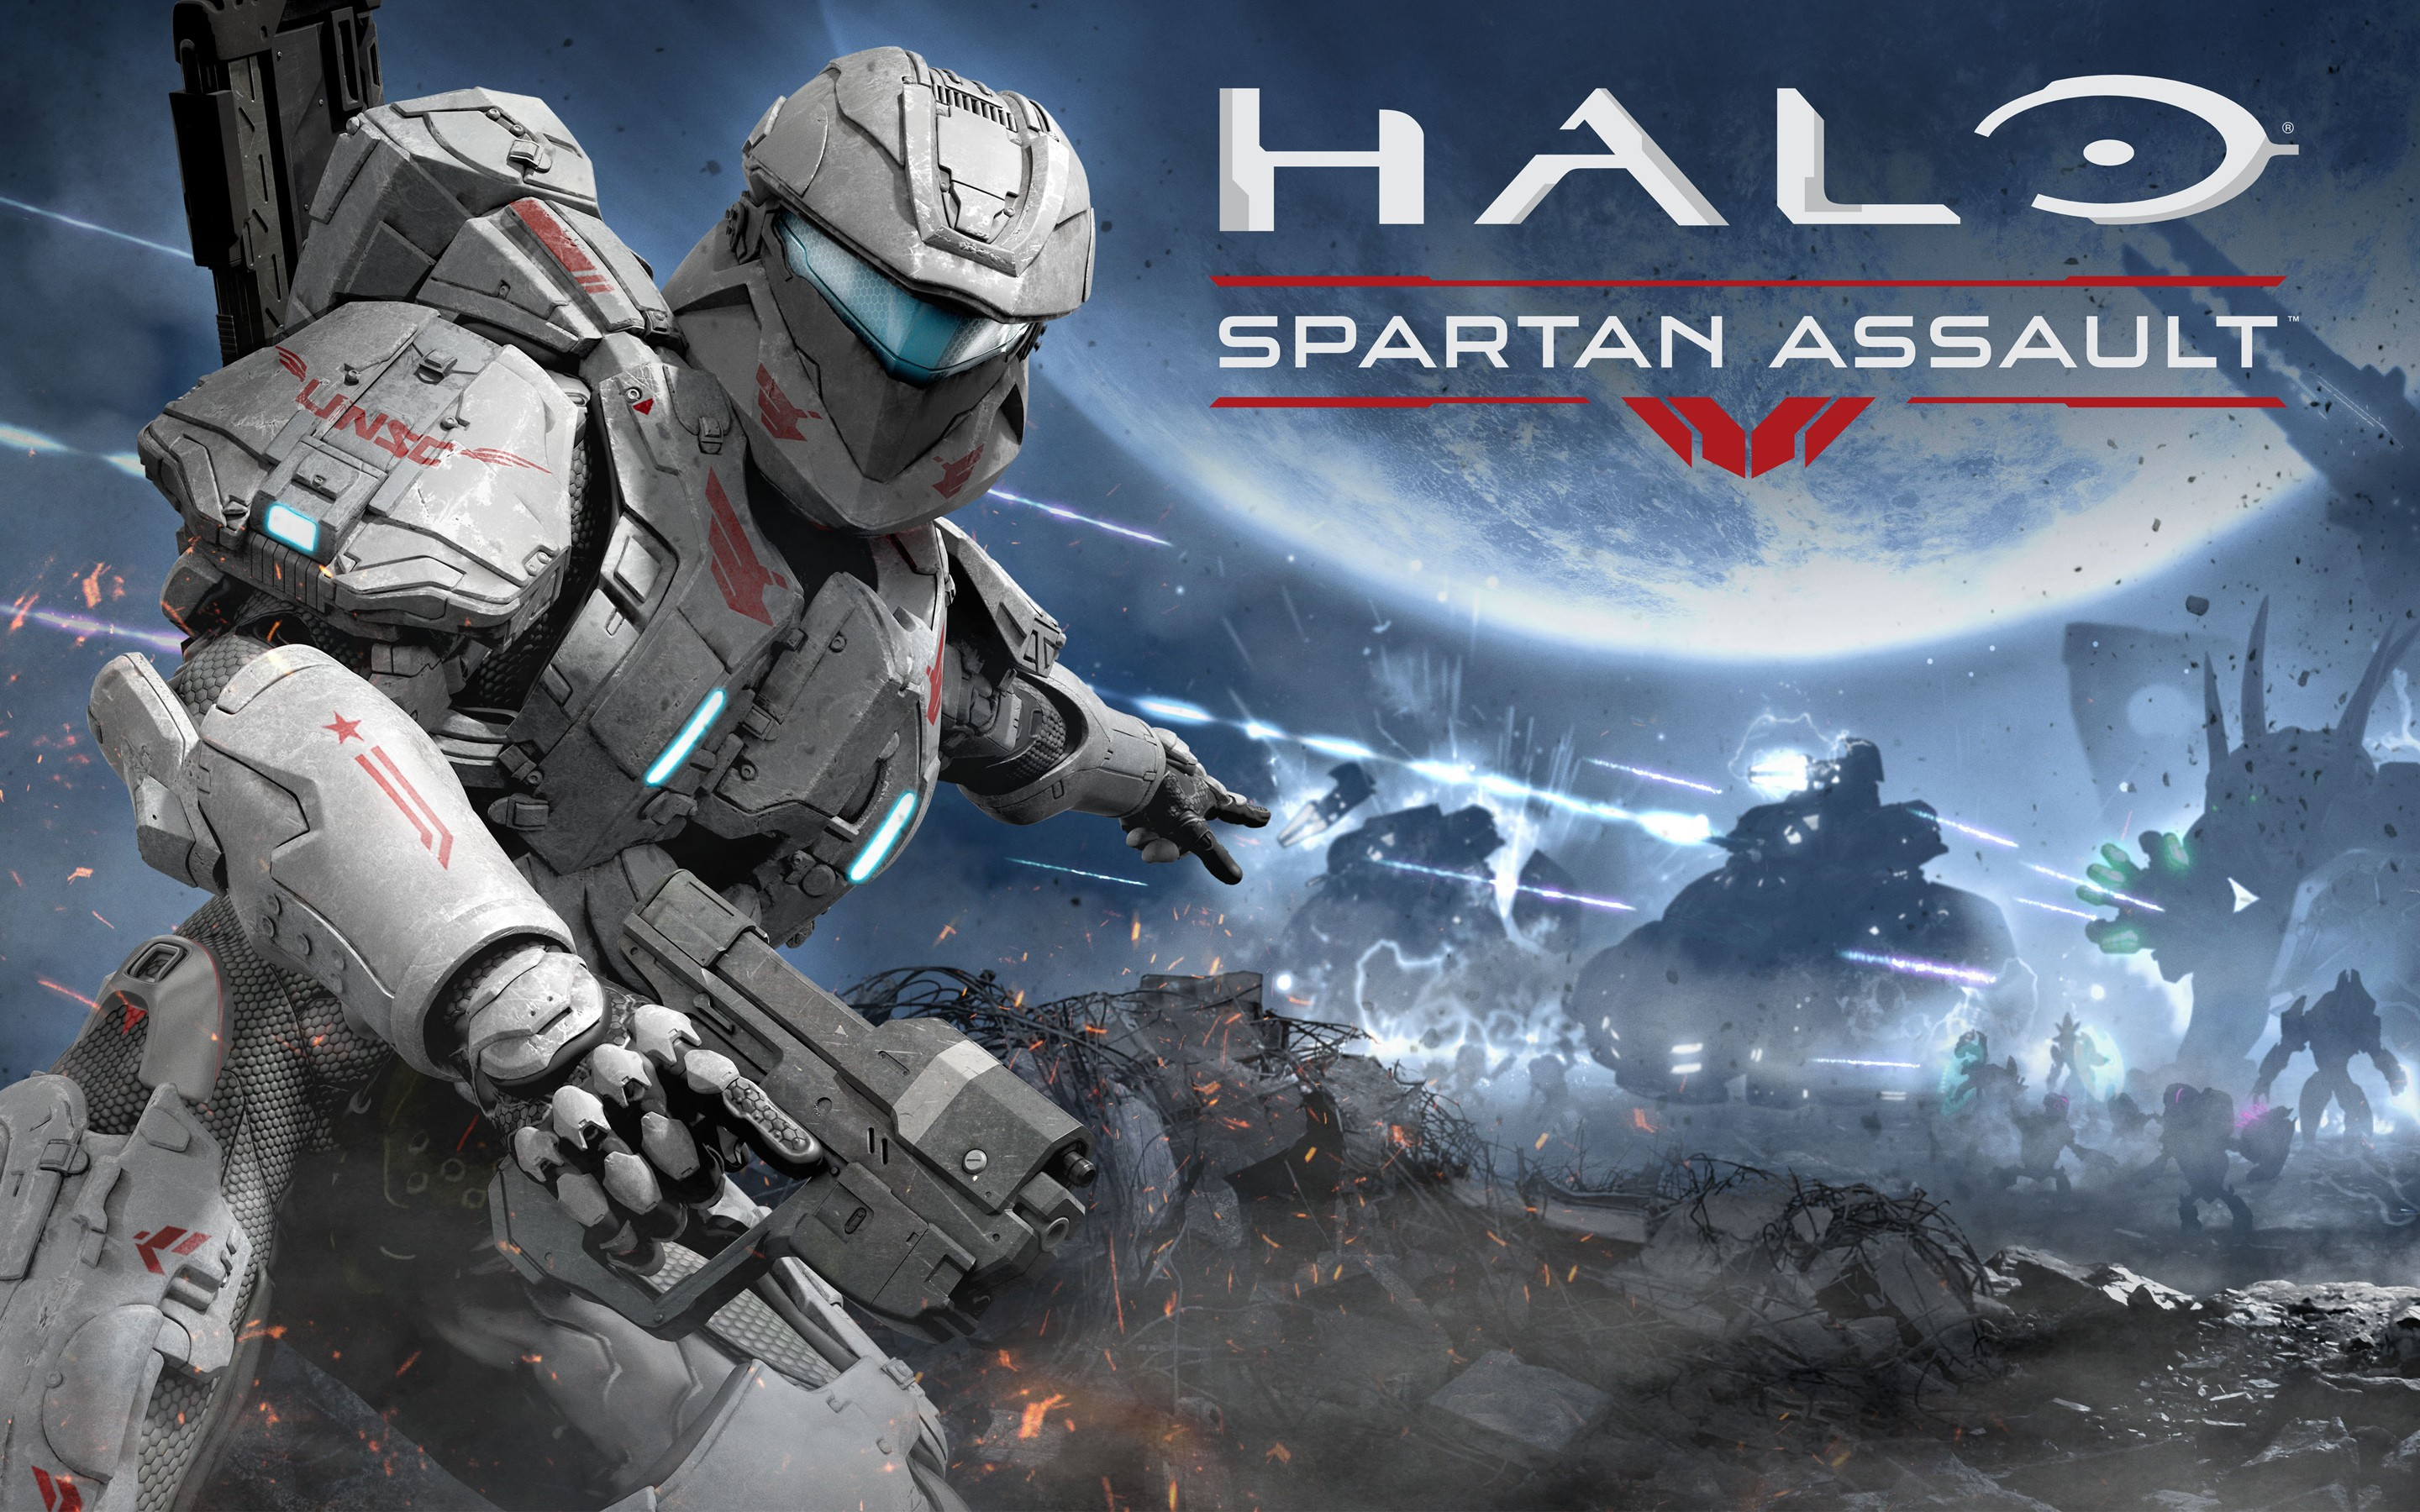 53 Halo Wallpapers 1 Download Free Cool Backgrounds For Desktop